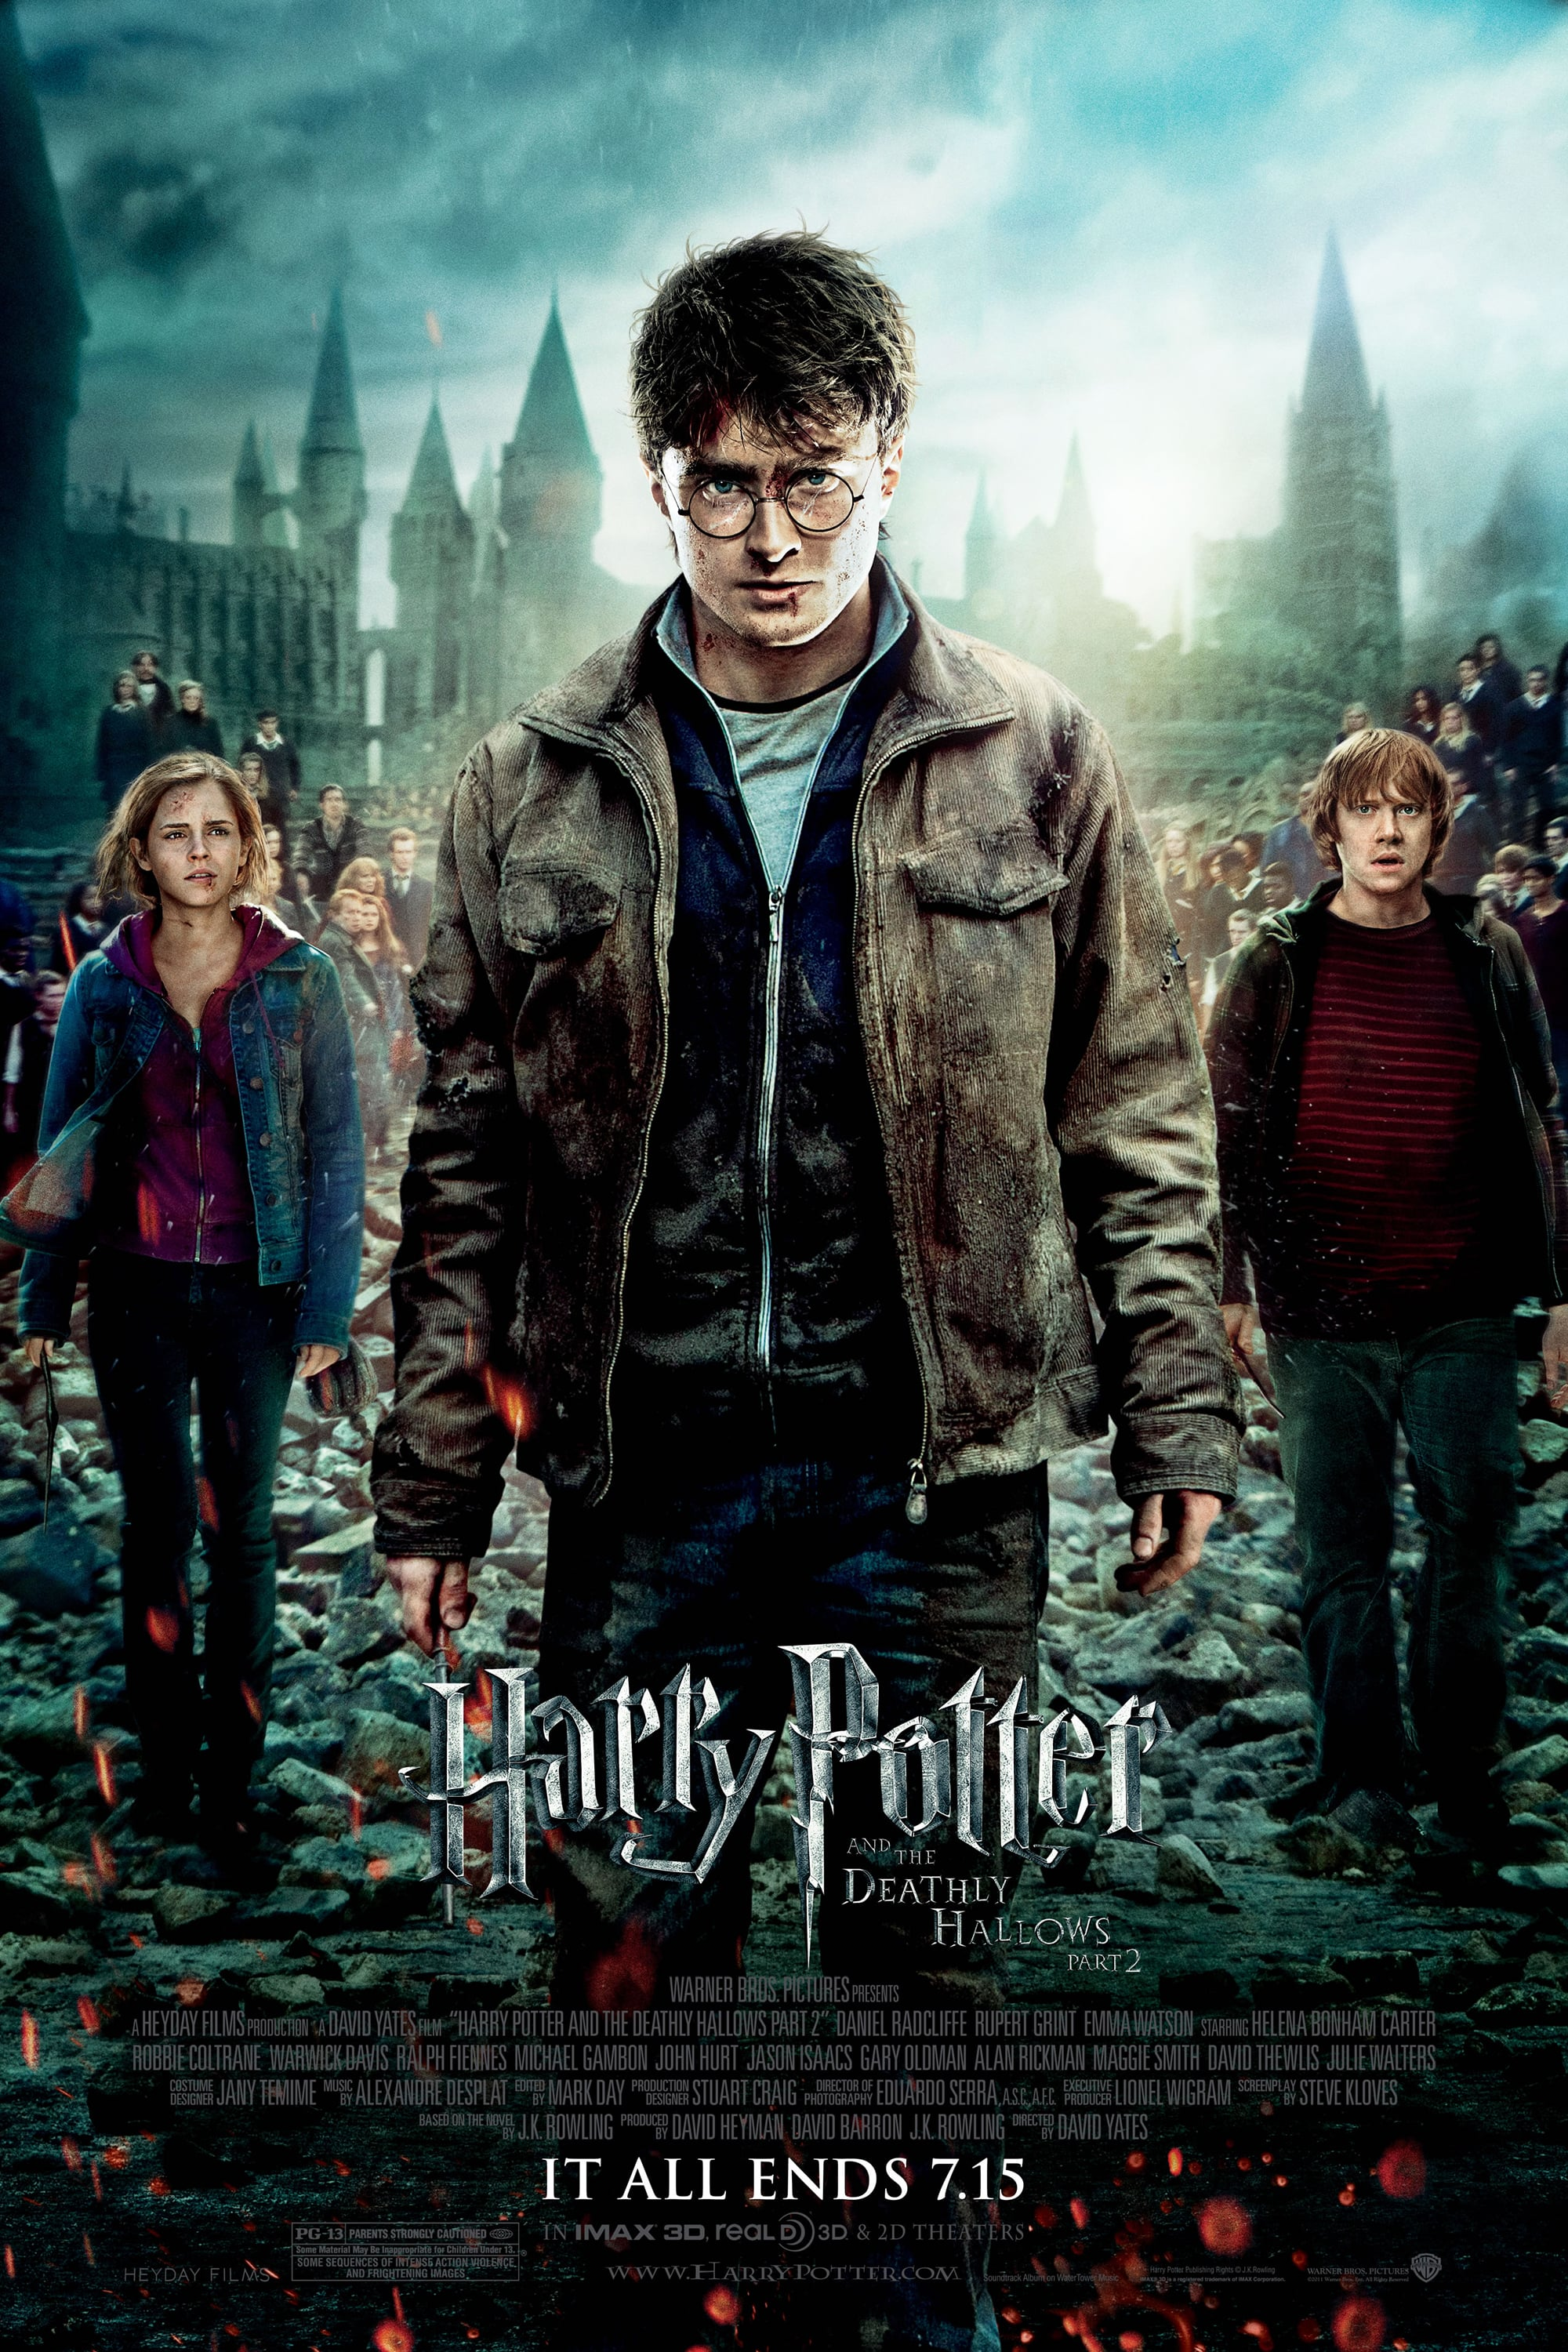 harry potter and the deathly hallows part 2 2011 imdb harry potter and the deathly hallows